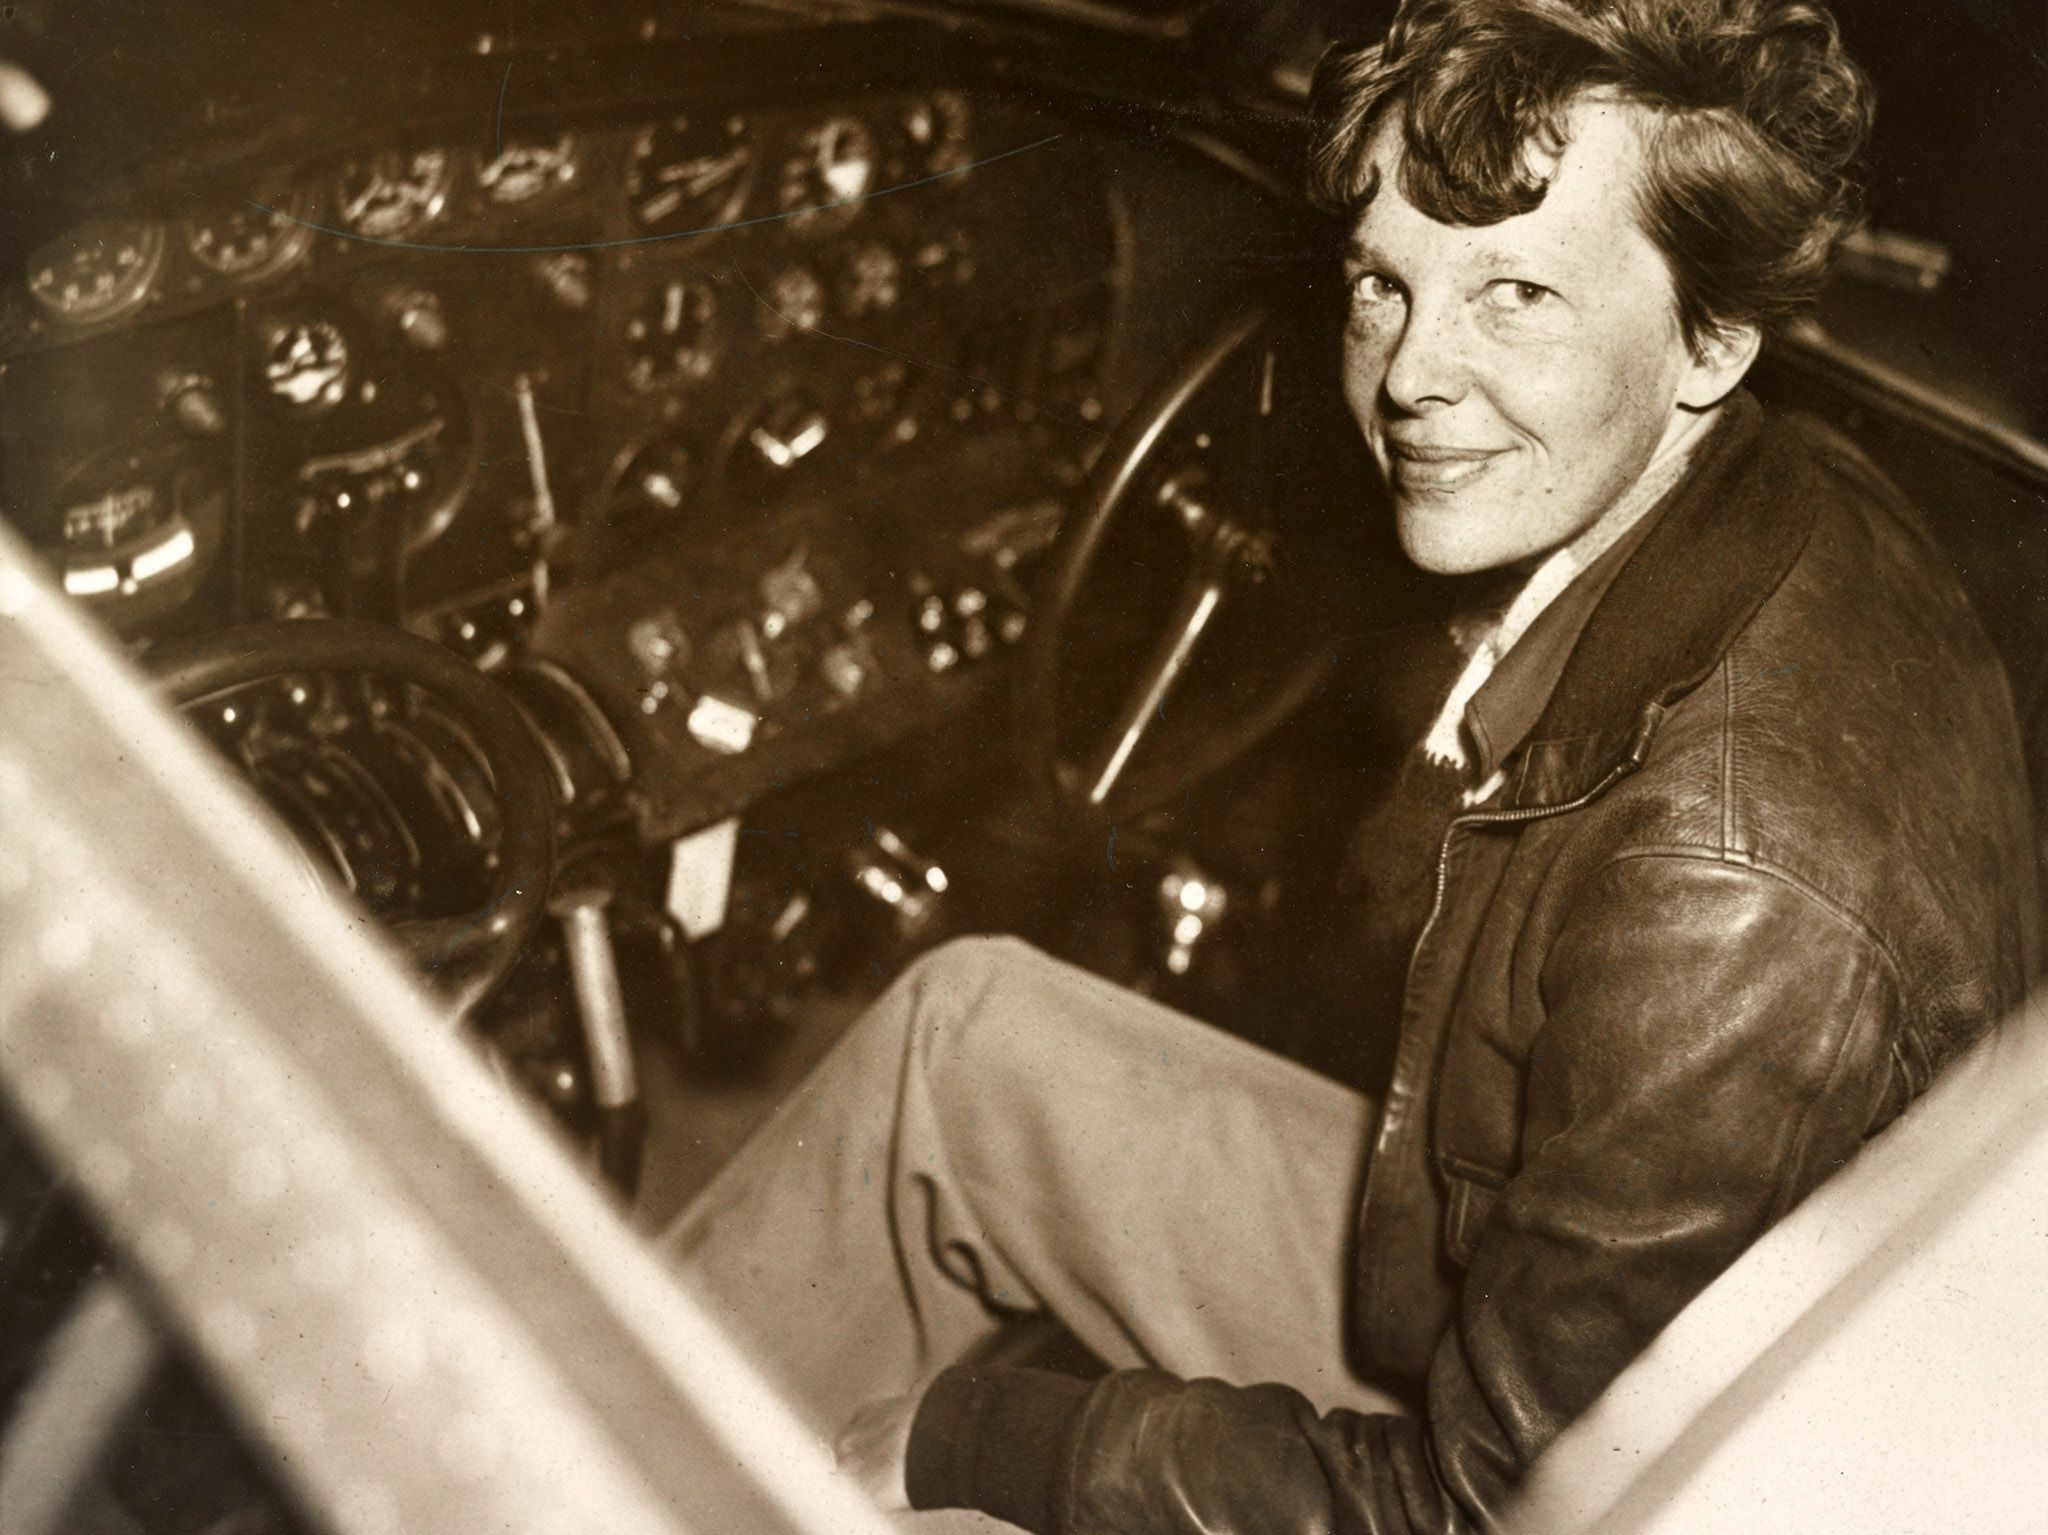 File photo of Amelia Earhart released December 1937. This image is from Expedition Amelia. [Foto del giorno - October 2019]